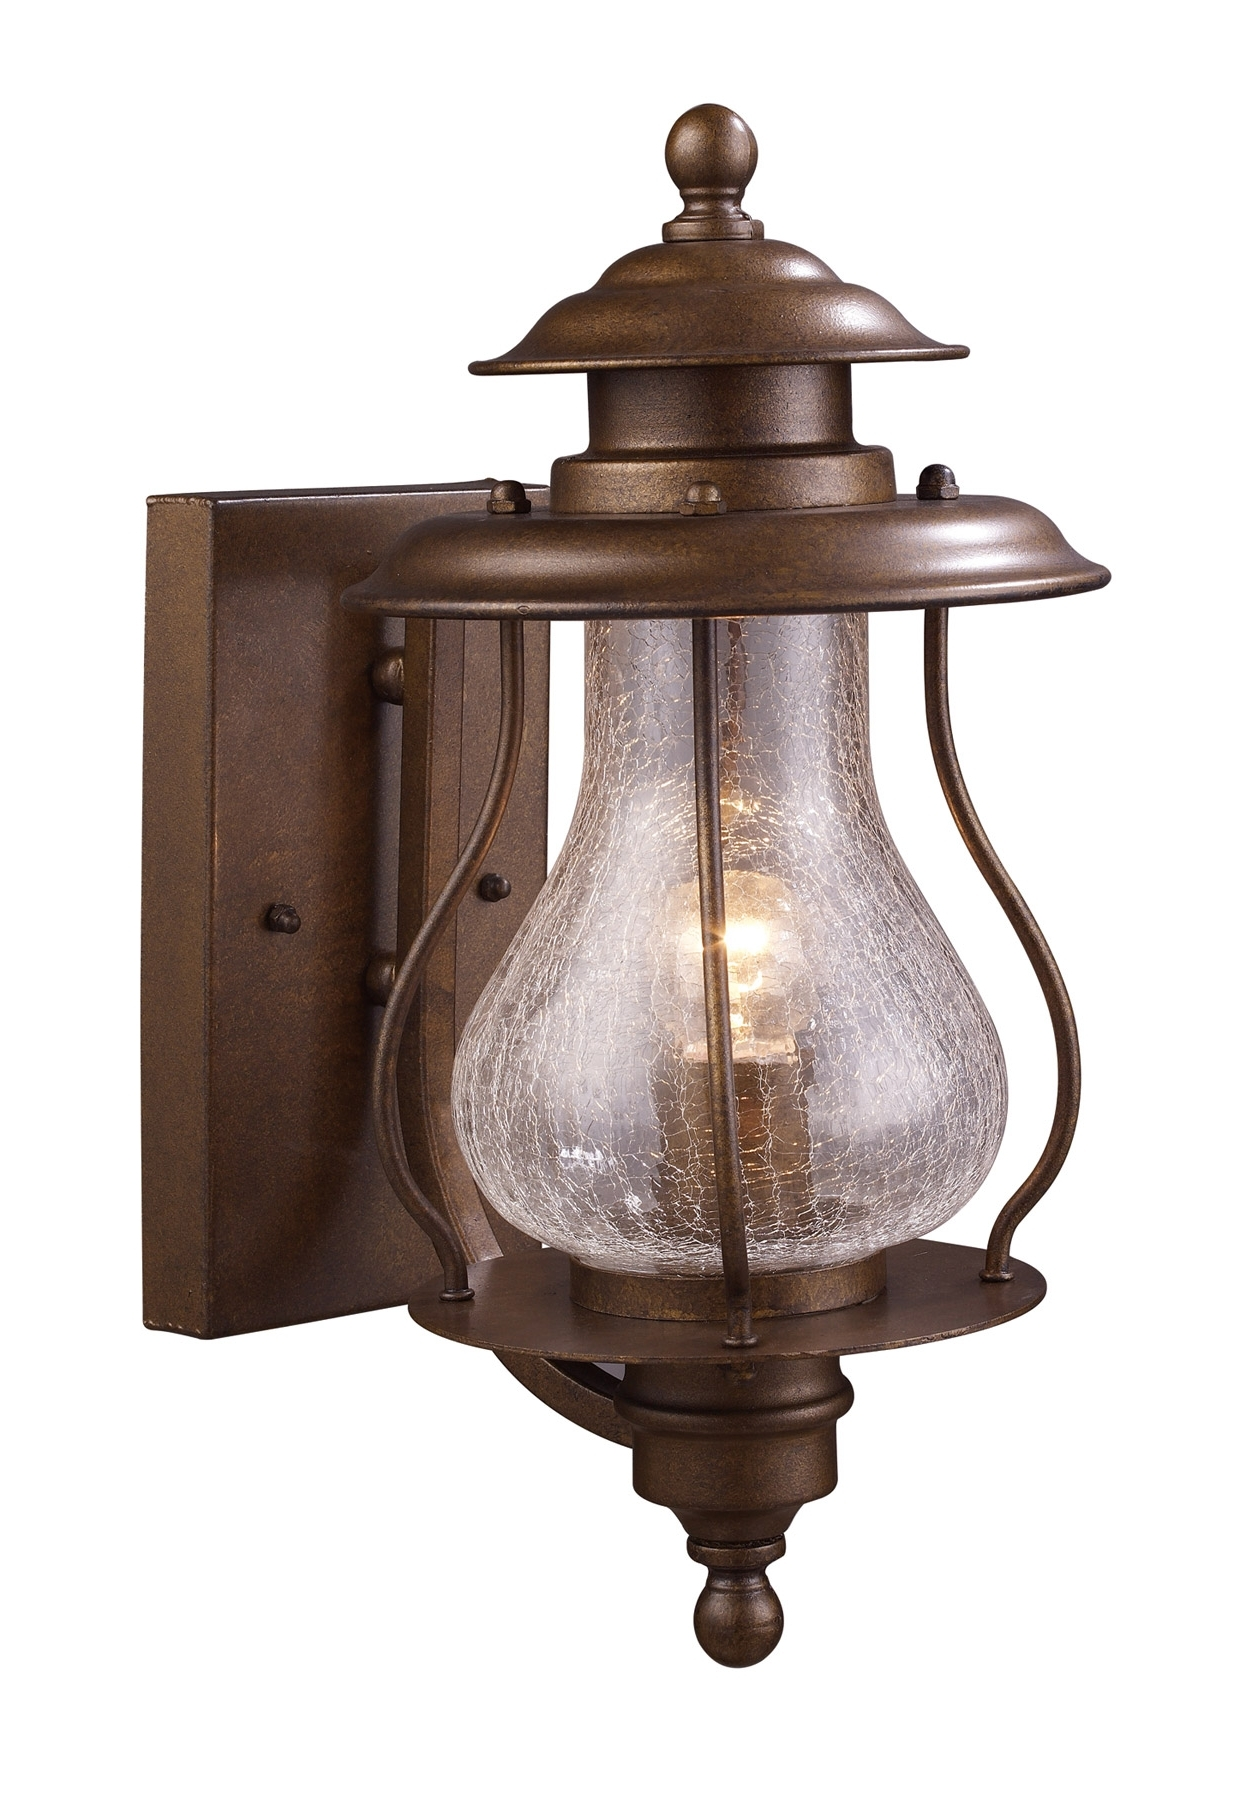 Preferred Large Antique Galvanized Outdoor Wall Mounted Sconce Lighting With Regarding Antique Outdoor Wall Lighting (View 5 of 20)